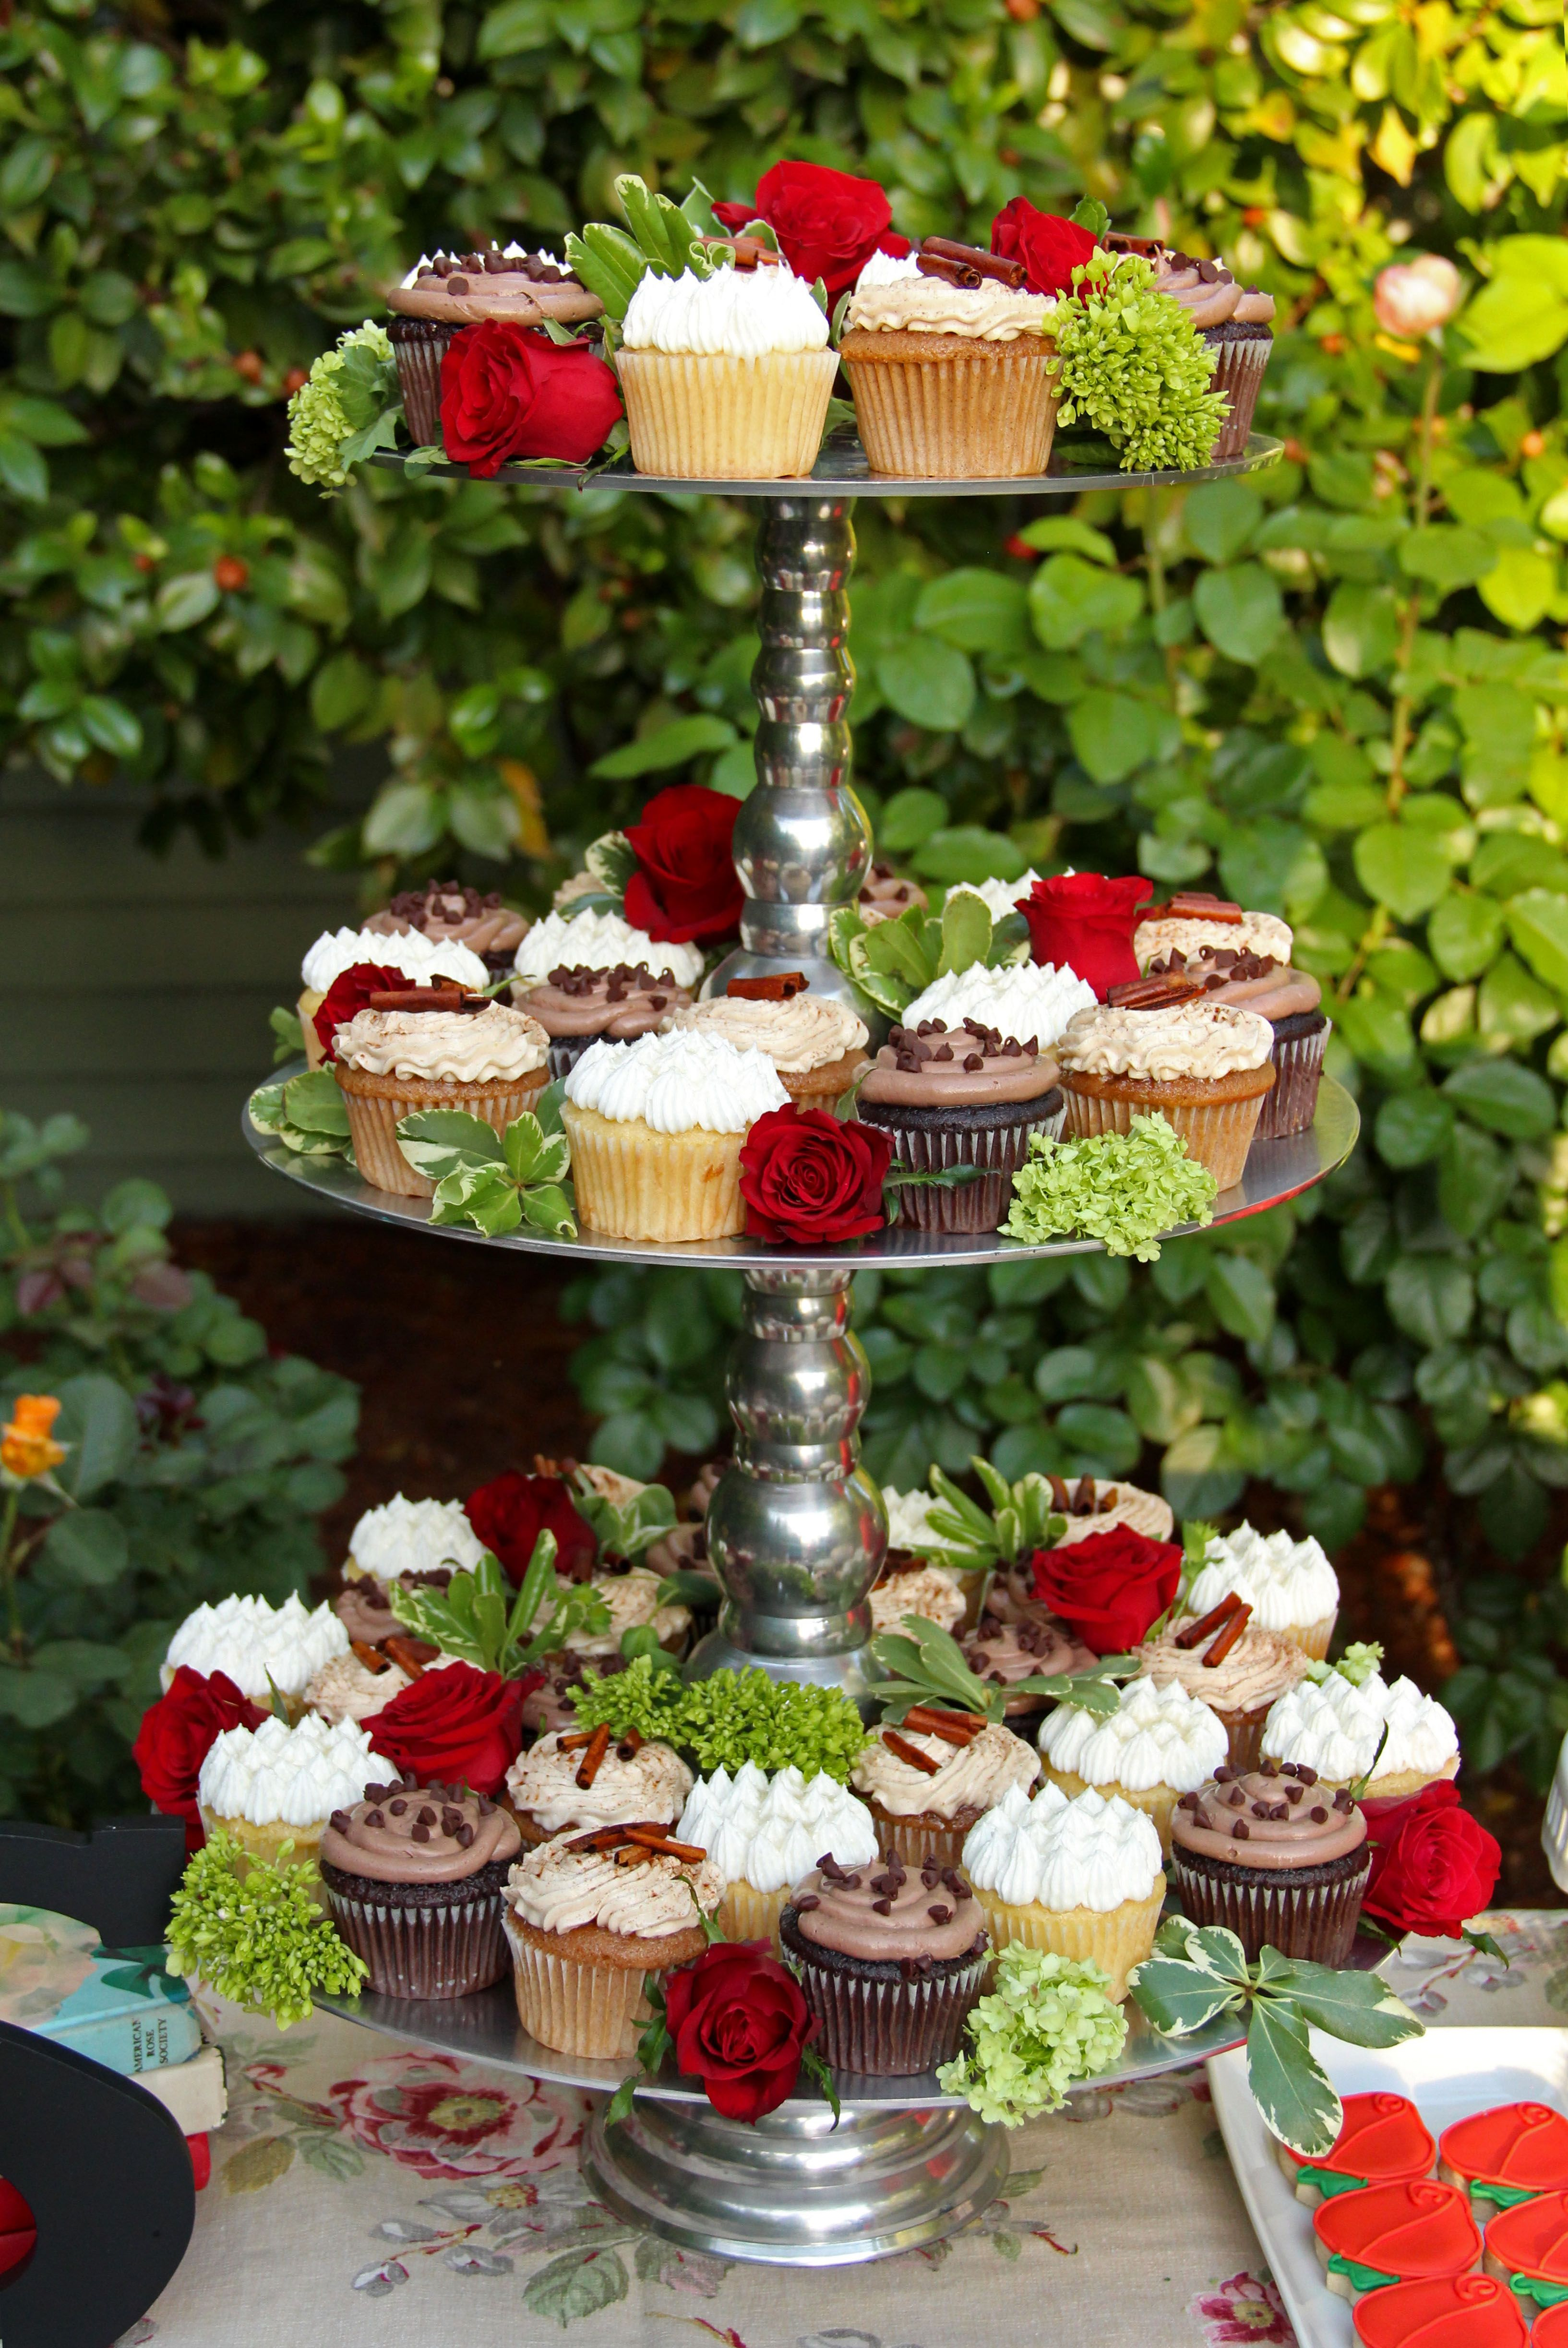 This is the cupcake tower we will be using. The chocolate cake should be on top. There will be flowers between the cupcakes.